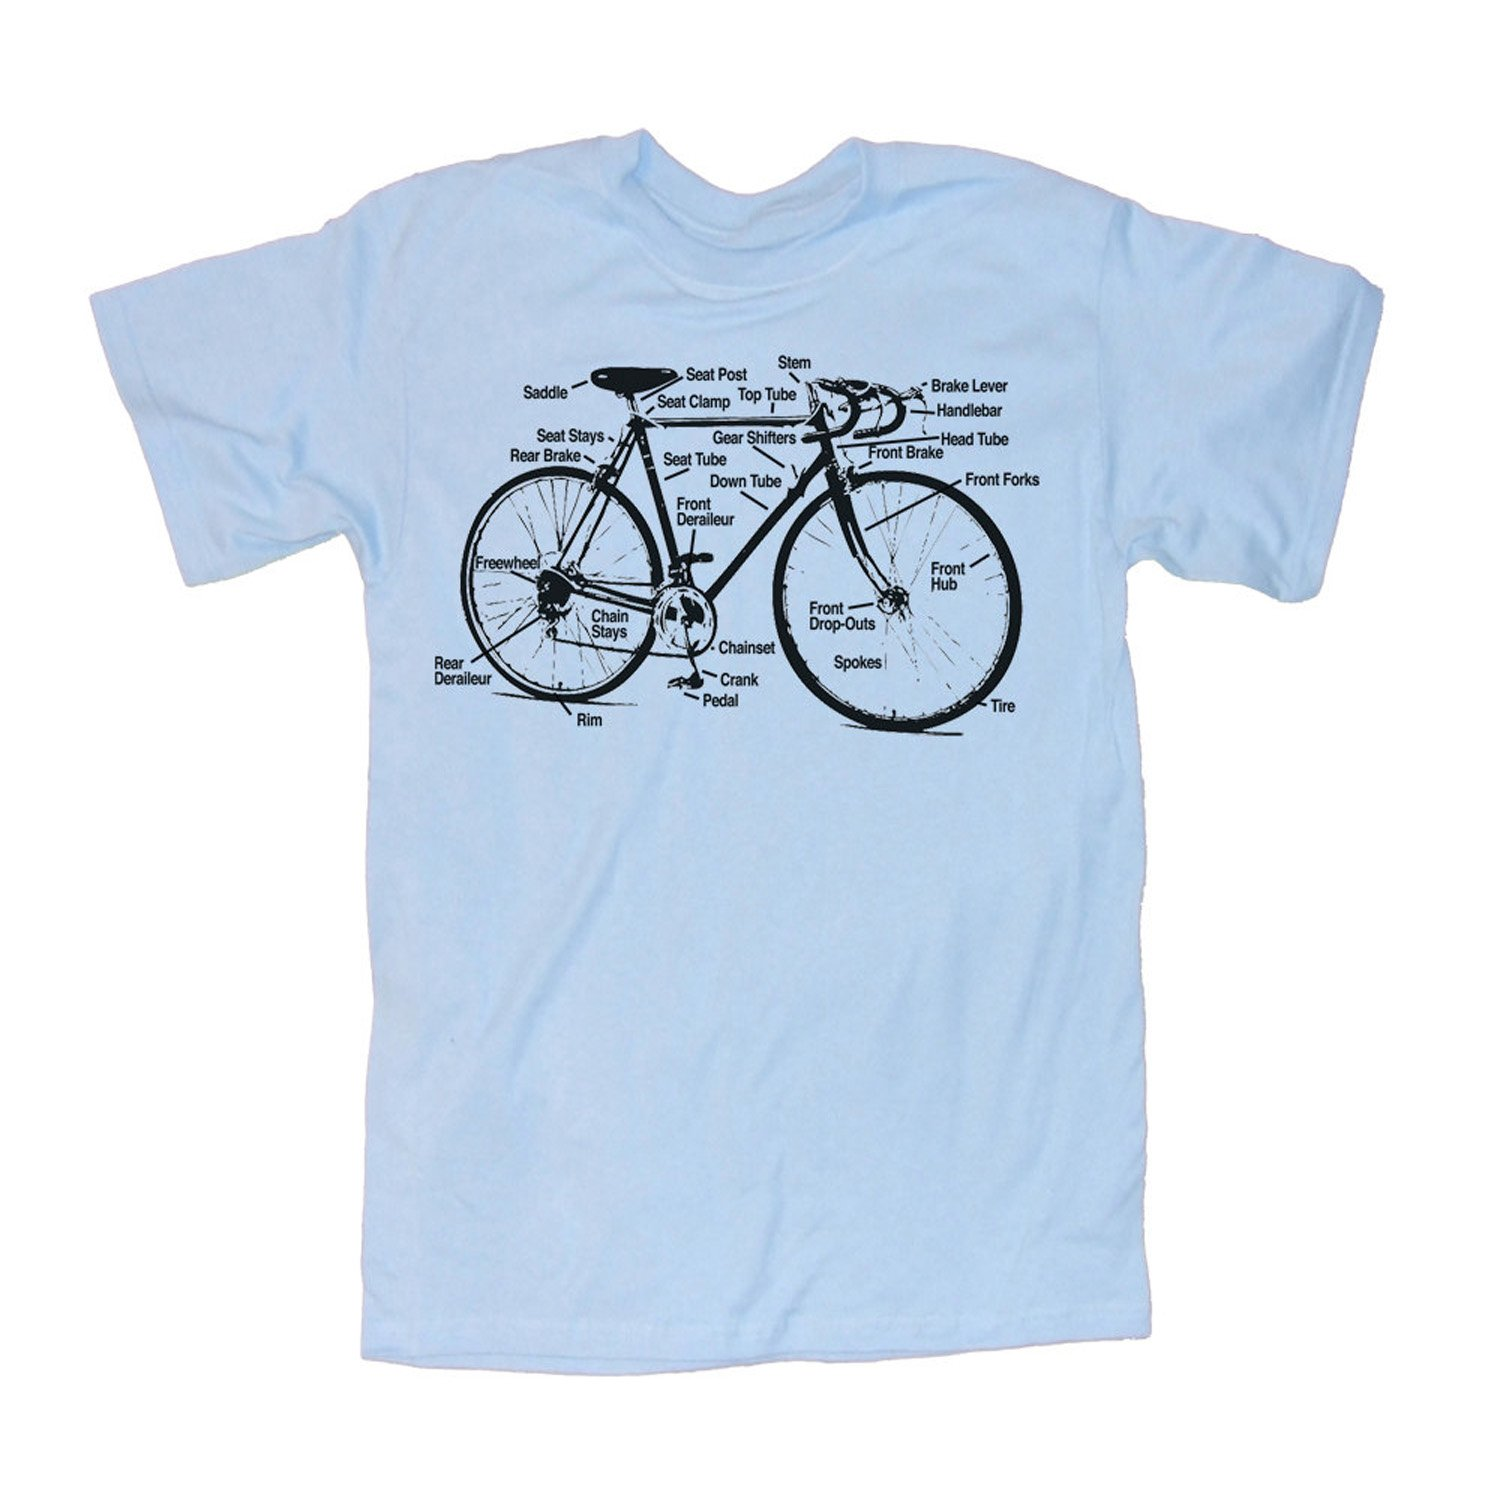 71a6iIlGycL._UL1500_ amazon com happy family retro racing bike diagram mens t shirt shirt diagram at n-0.co